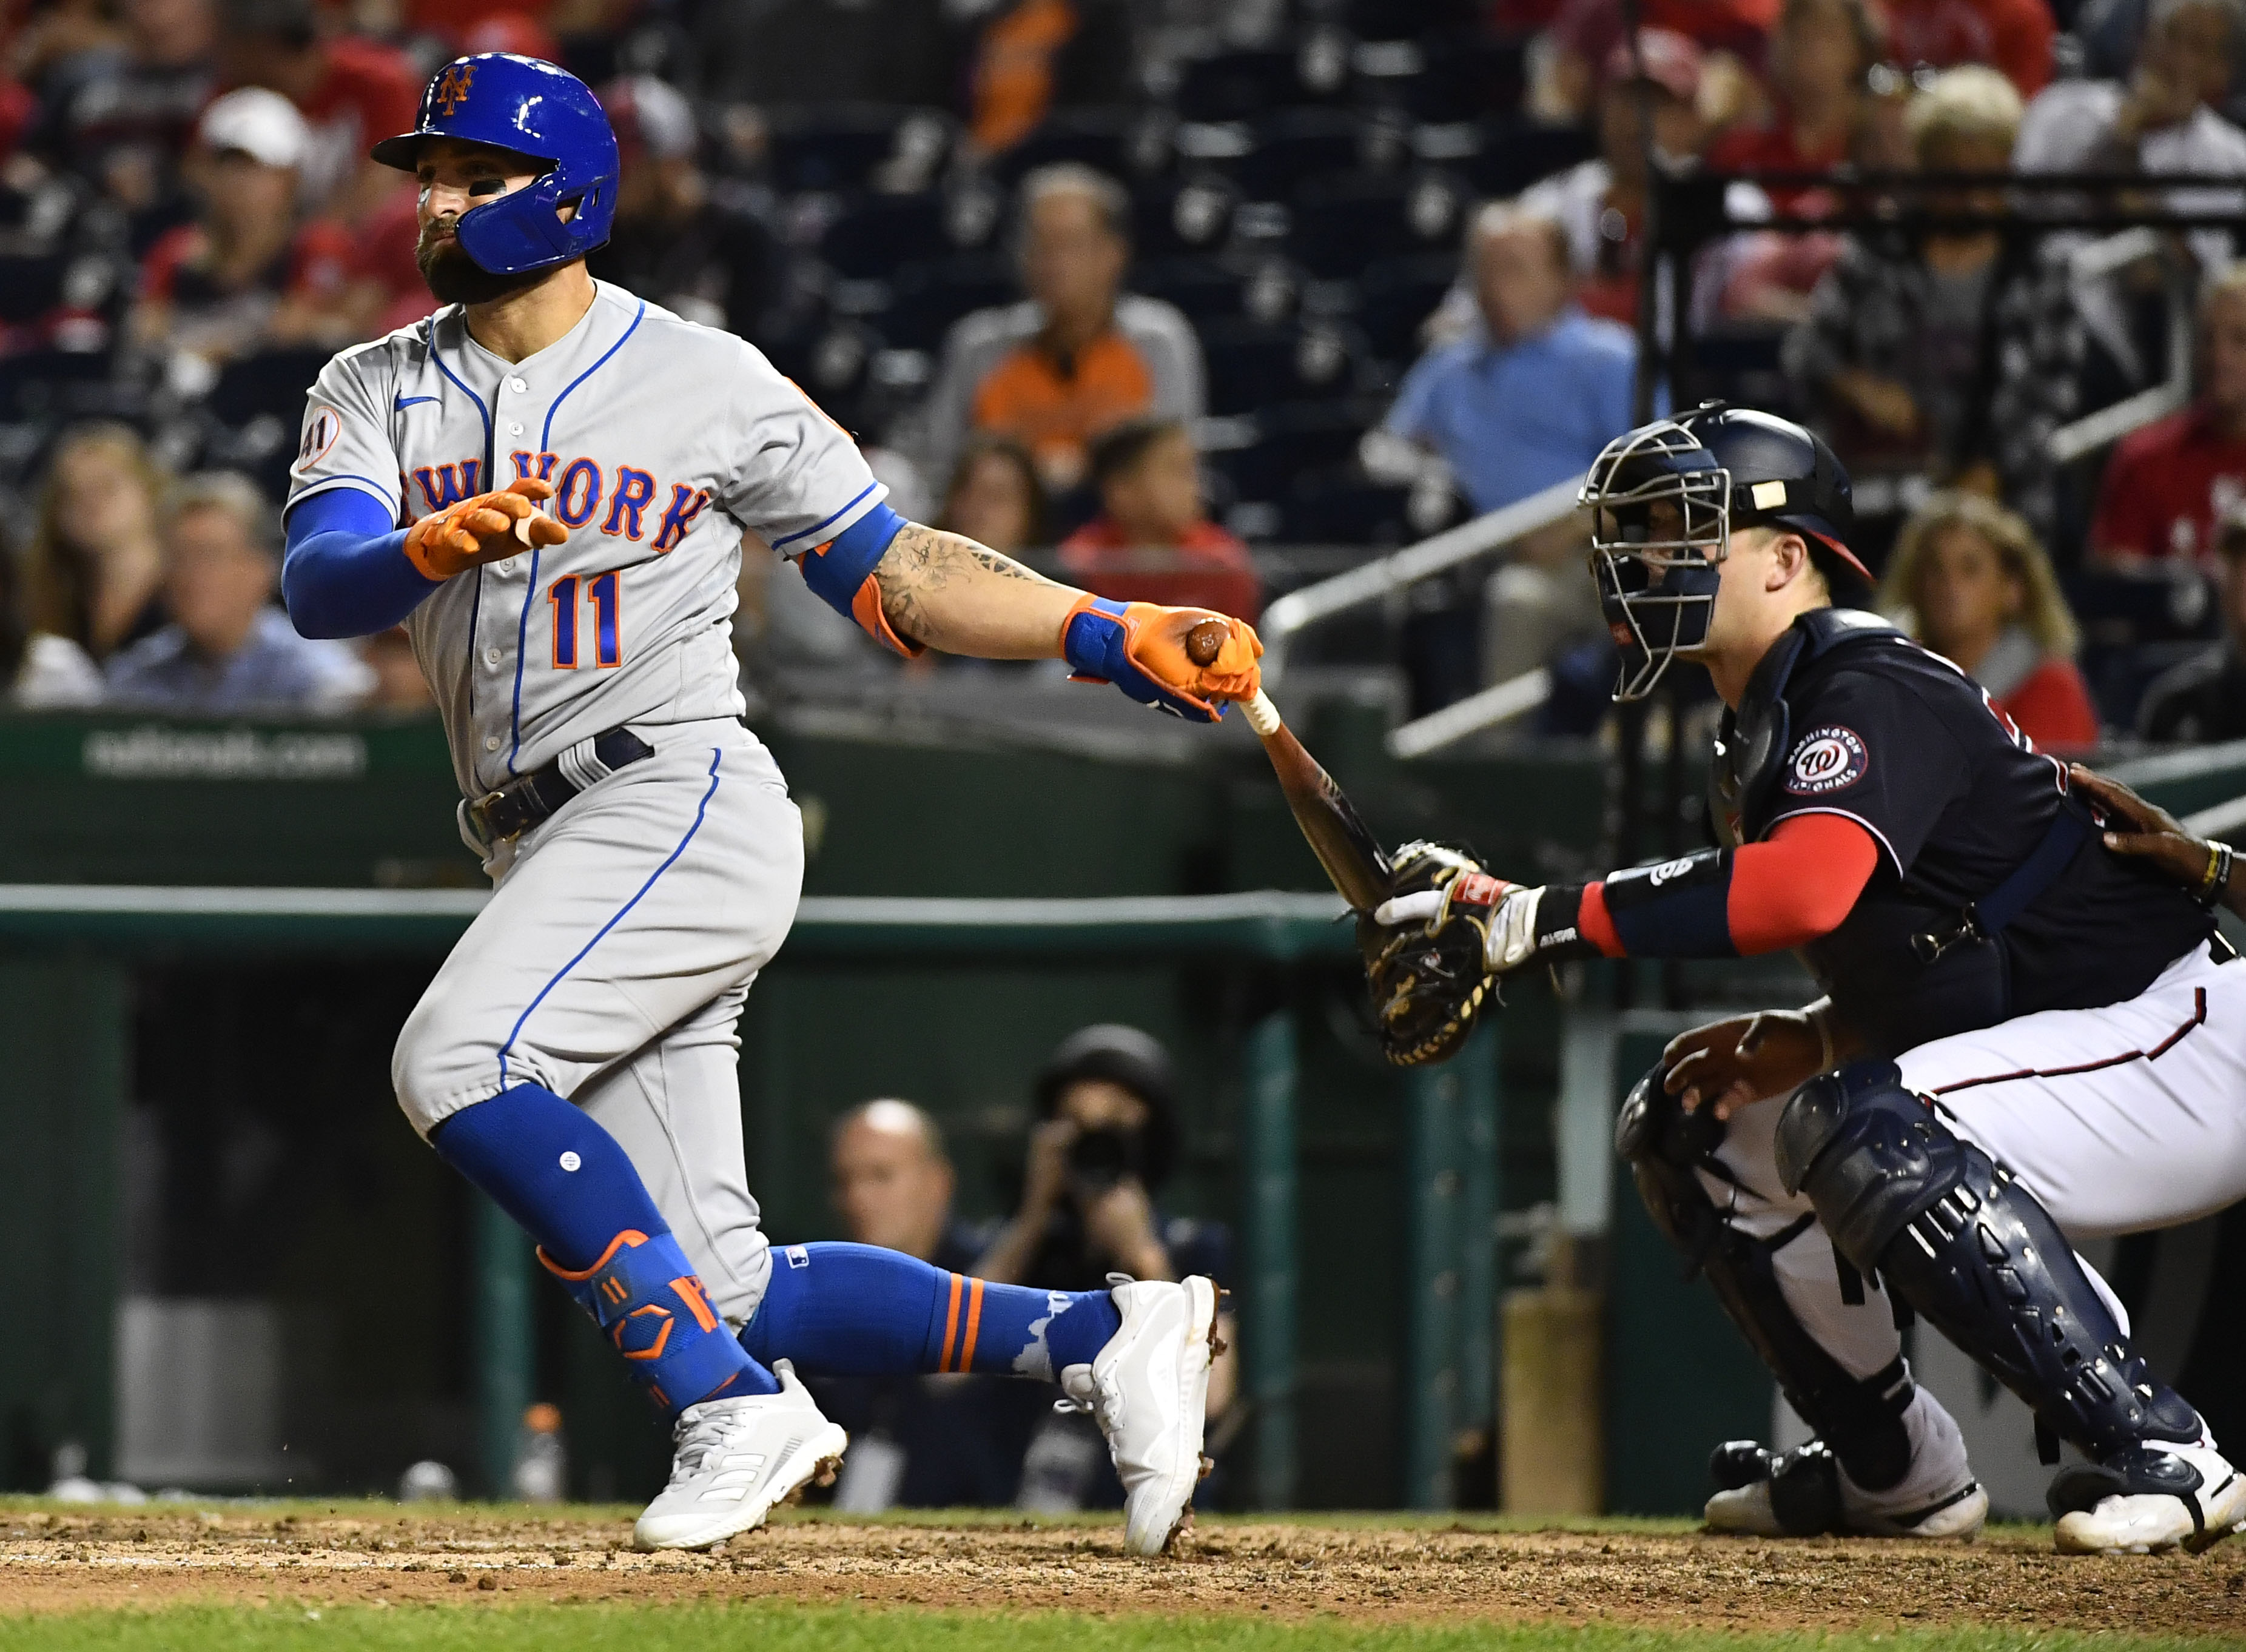 9/4/21 Game Preview: New York Mets at Washington Nationals, Doubleheader Edition